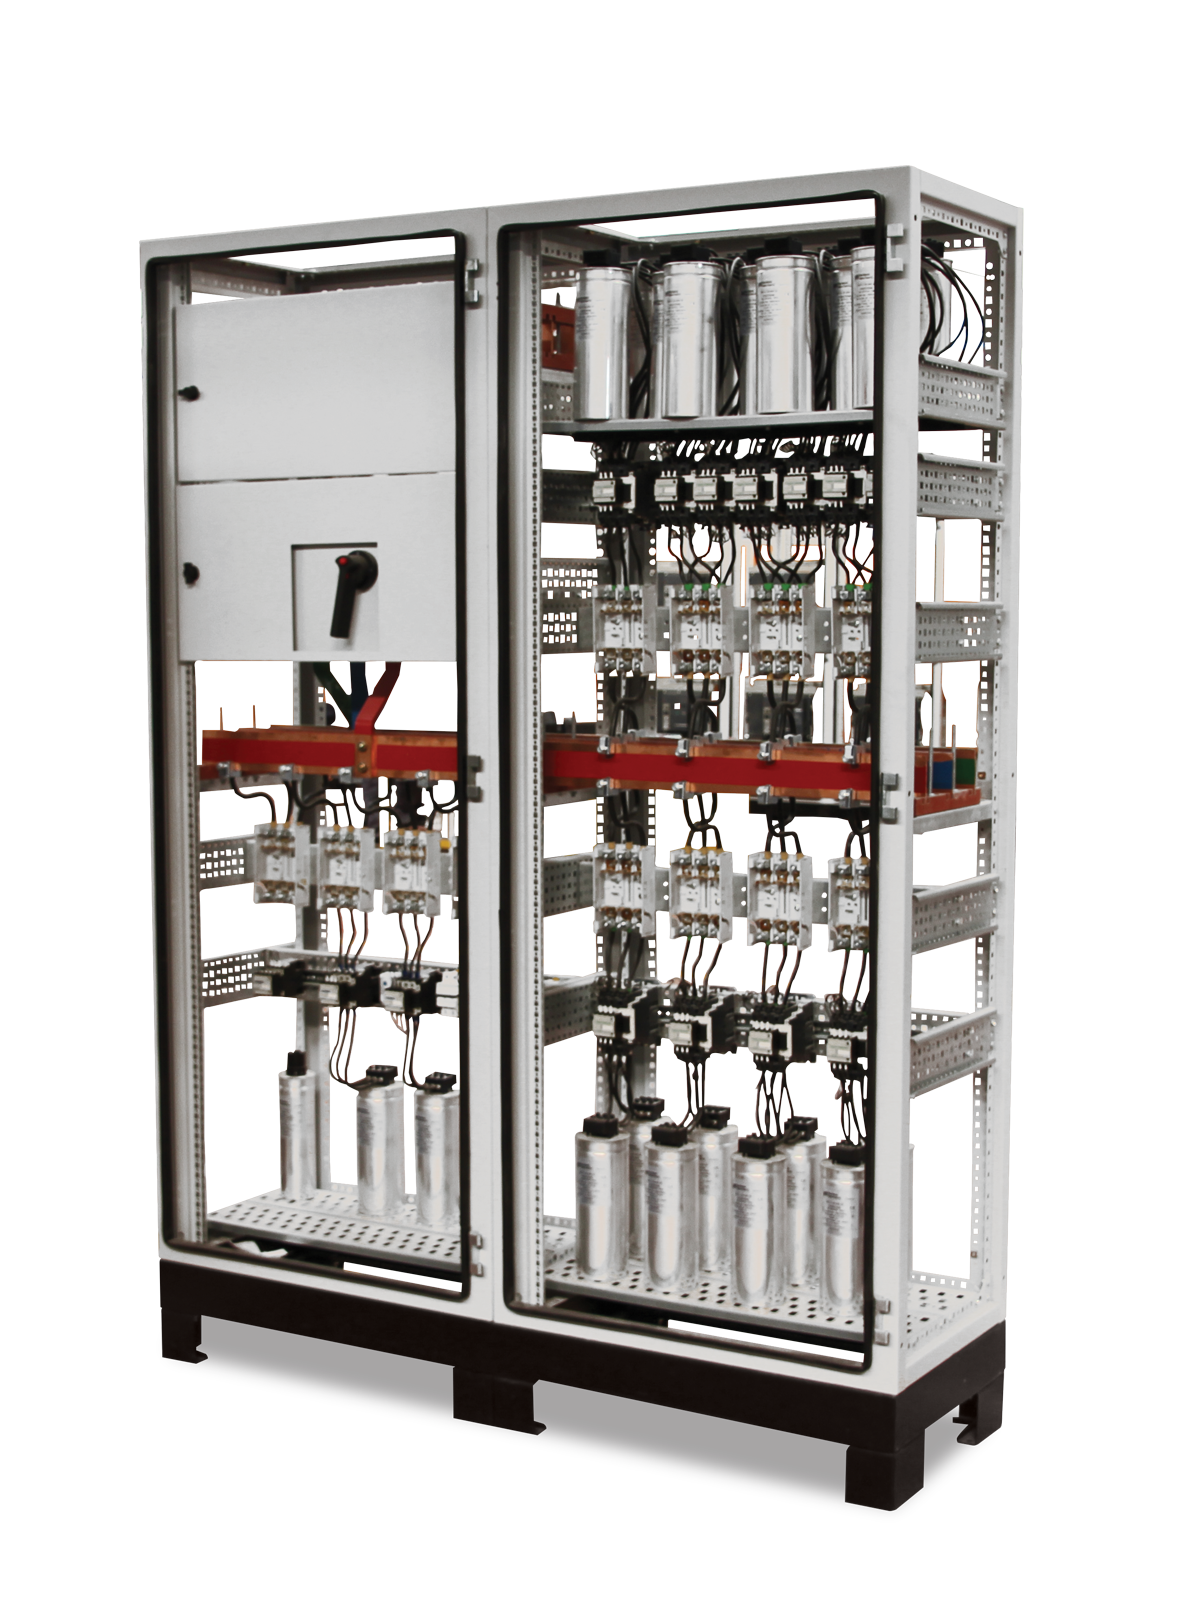 LTD - Switch Panels Center and Secondary Distribution Panels are Inner Covered2